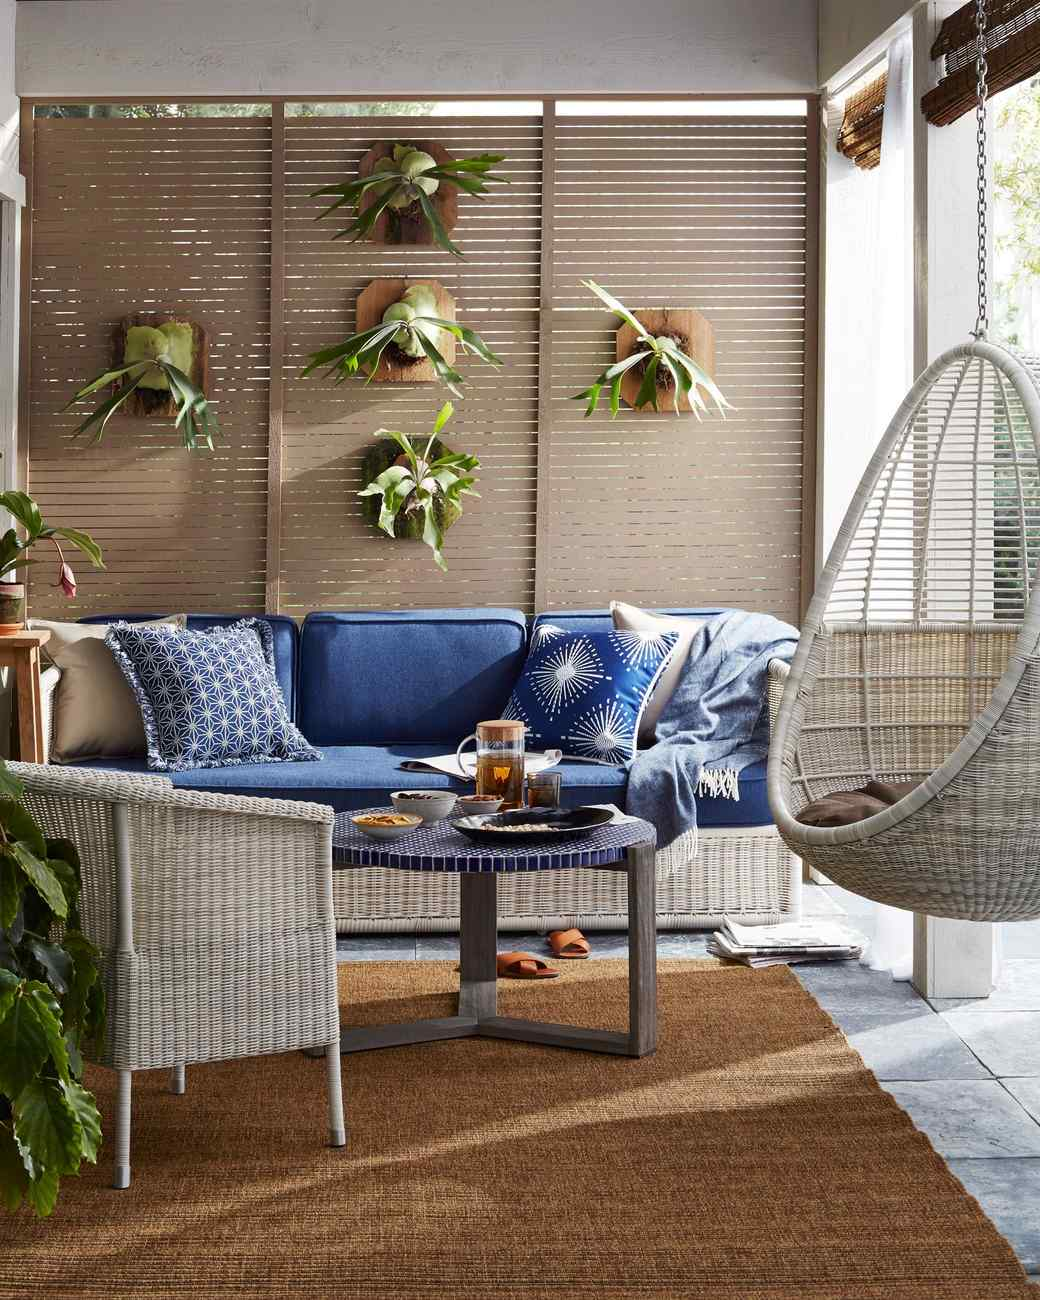 9 Essential Pieces for Luxurious Outdoor Living | Martha ... on Martha Living Patio id=69758